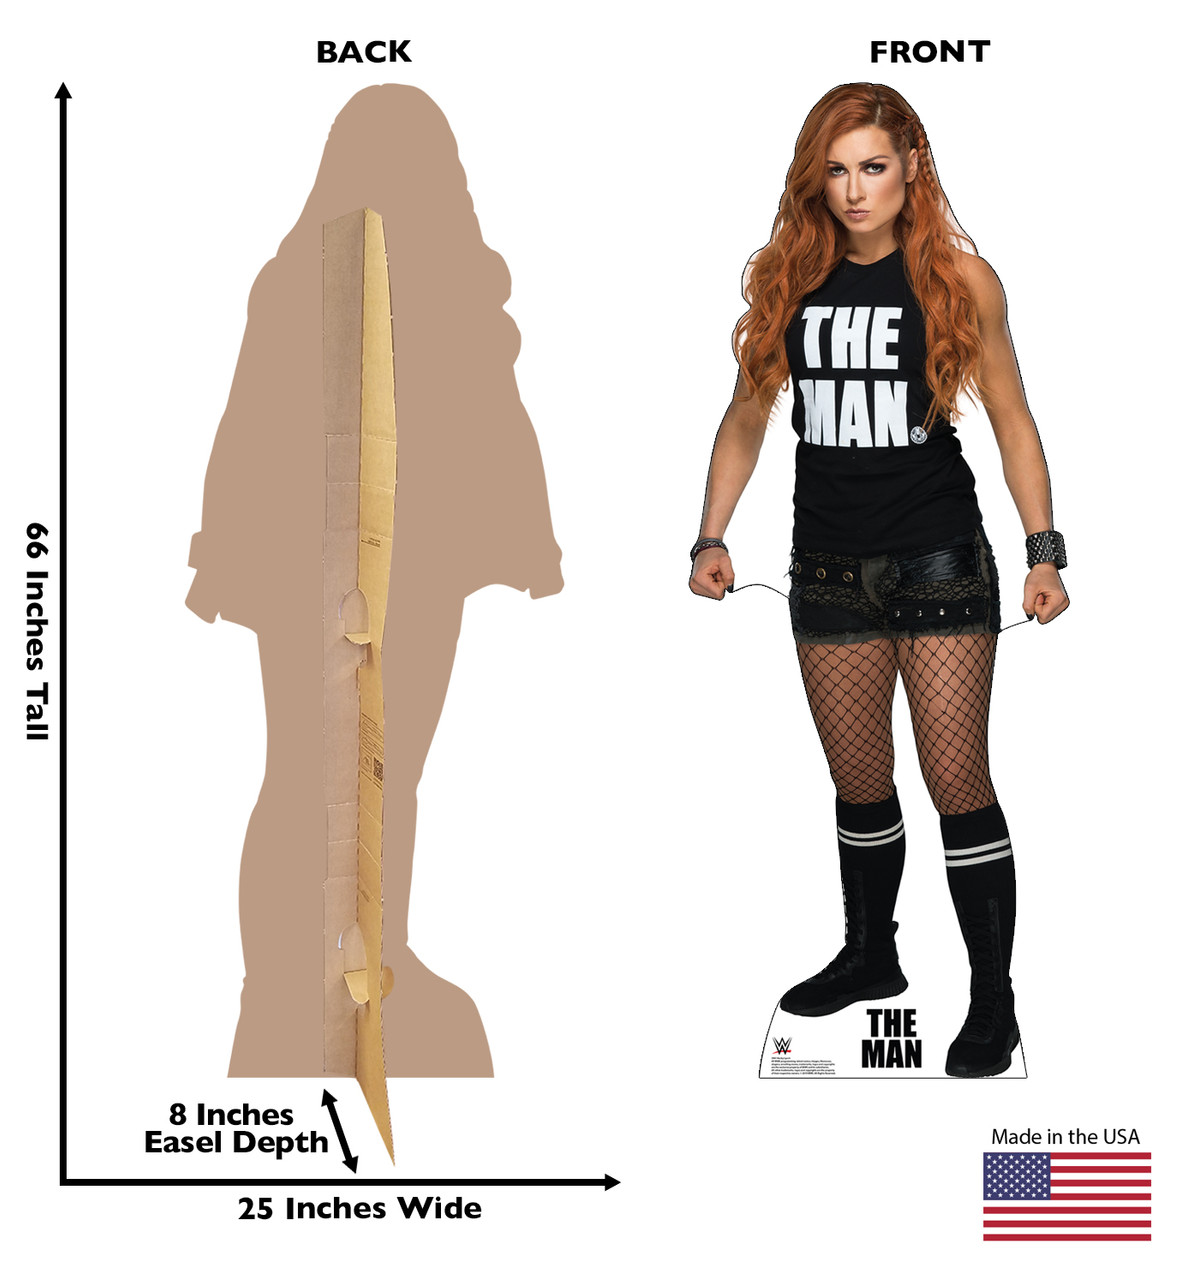 Becky Lynch WWE - Black Shirt Cardboard Cutout Front and Back View